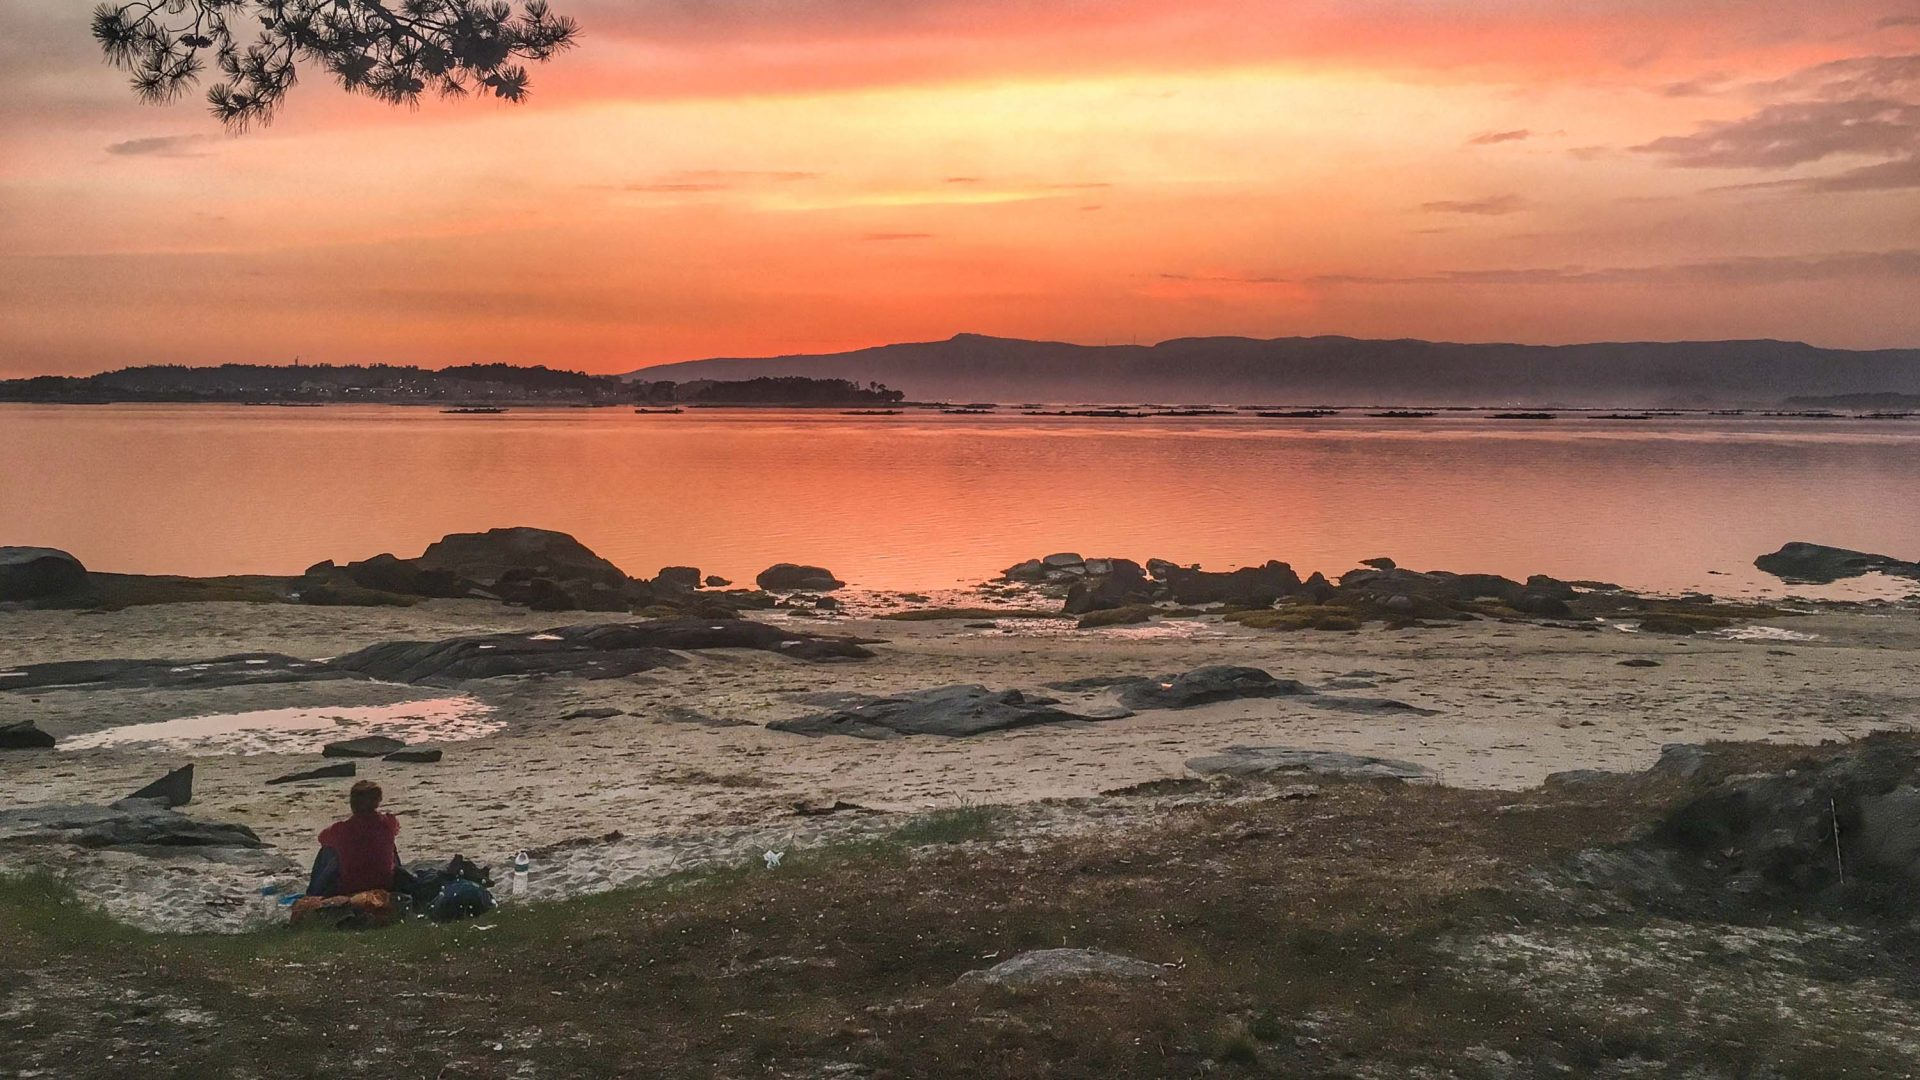 Red skies above a spot where Leon spent the night sleeping on the beach at Vilanova de Arousa, Galicia.